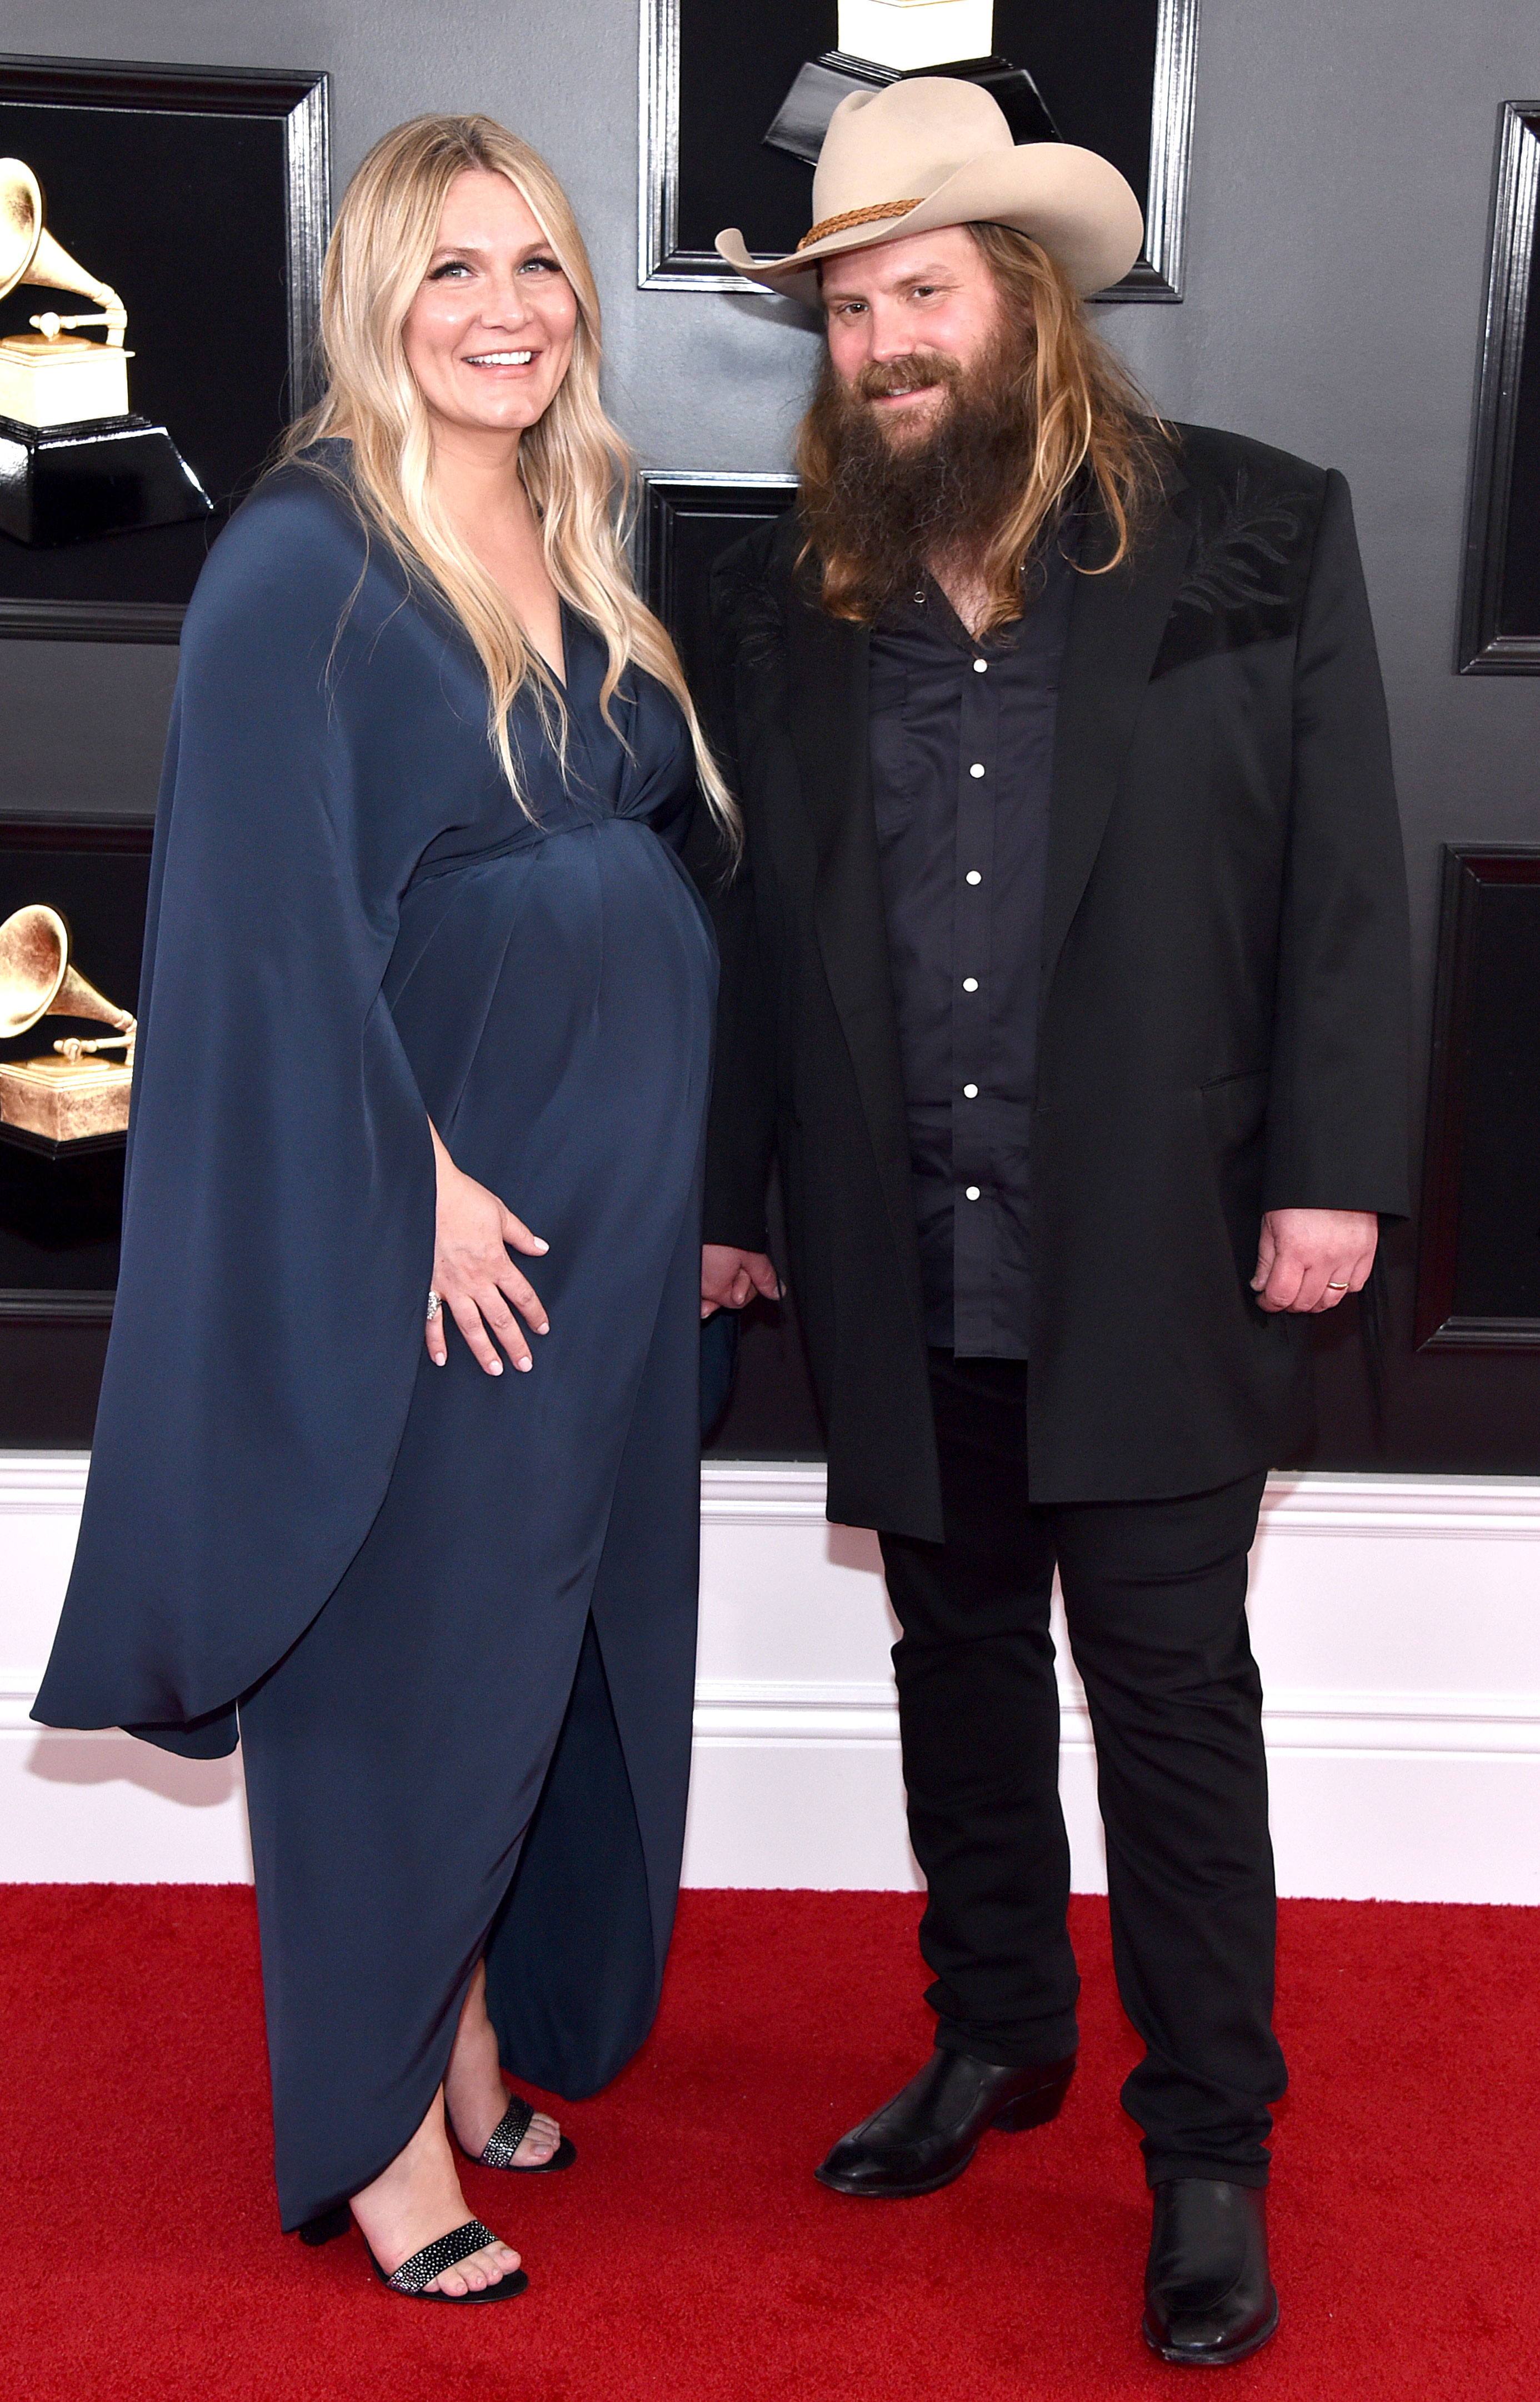 Chris Stapleton's Wife Morgane Gives Birth to Their Fifth Child Together - Morgane Stapleton and Chris Stapleton attend the 61st Annual GRAMMY Awards at Staples Center on February 10, 2019 in Los Angeles, California.